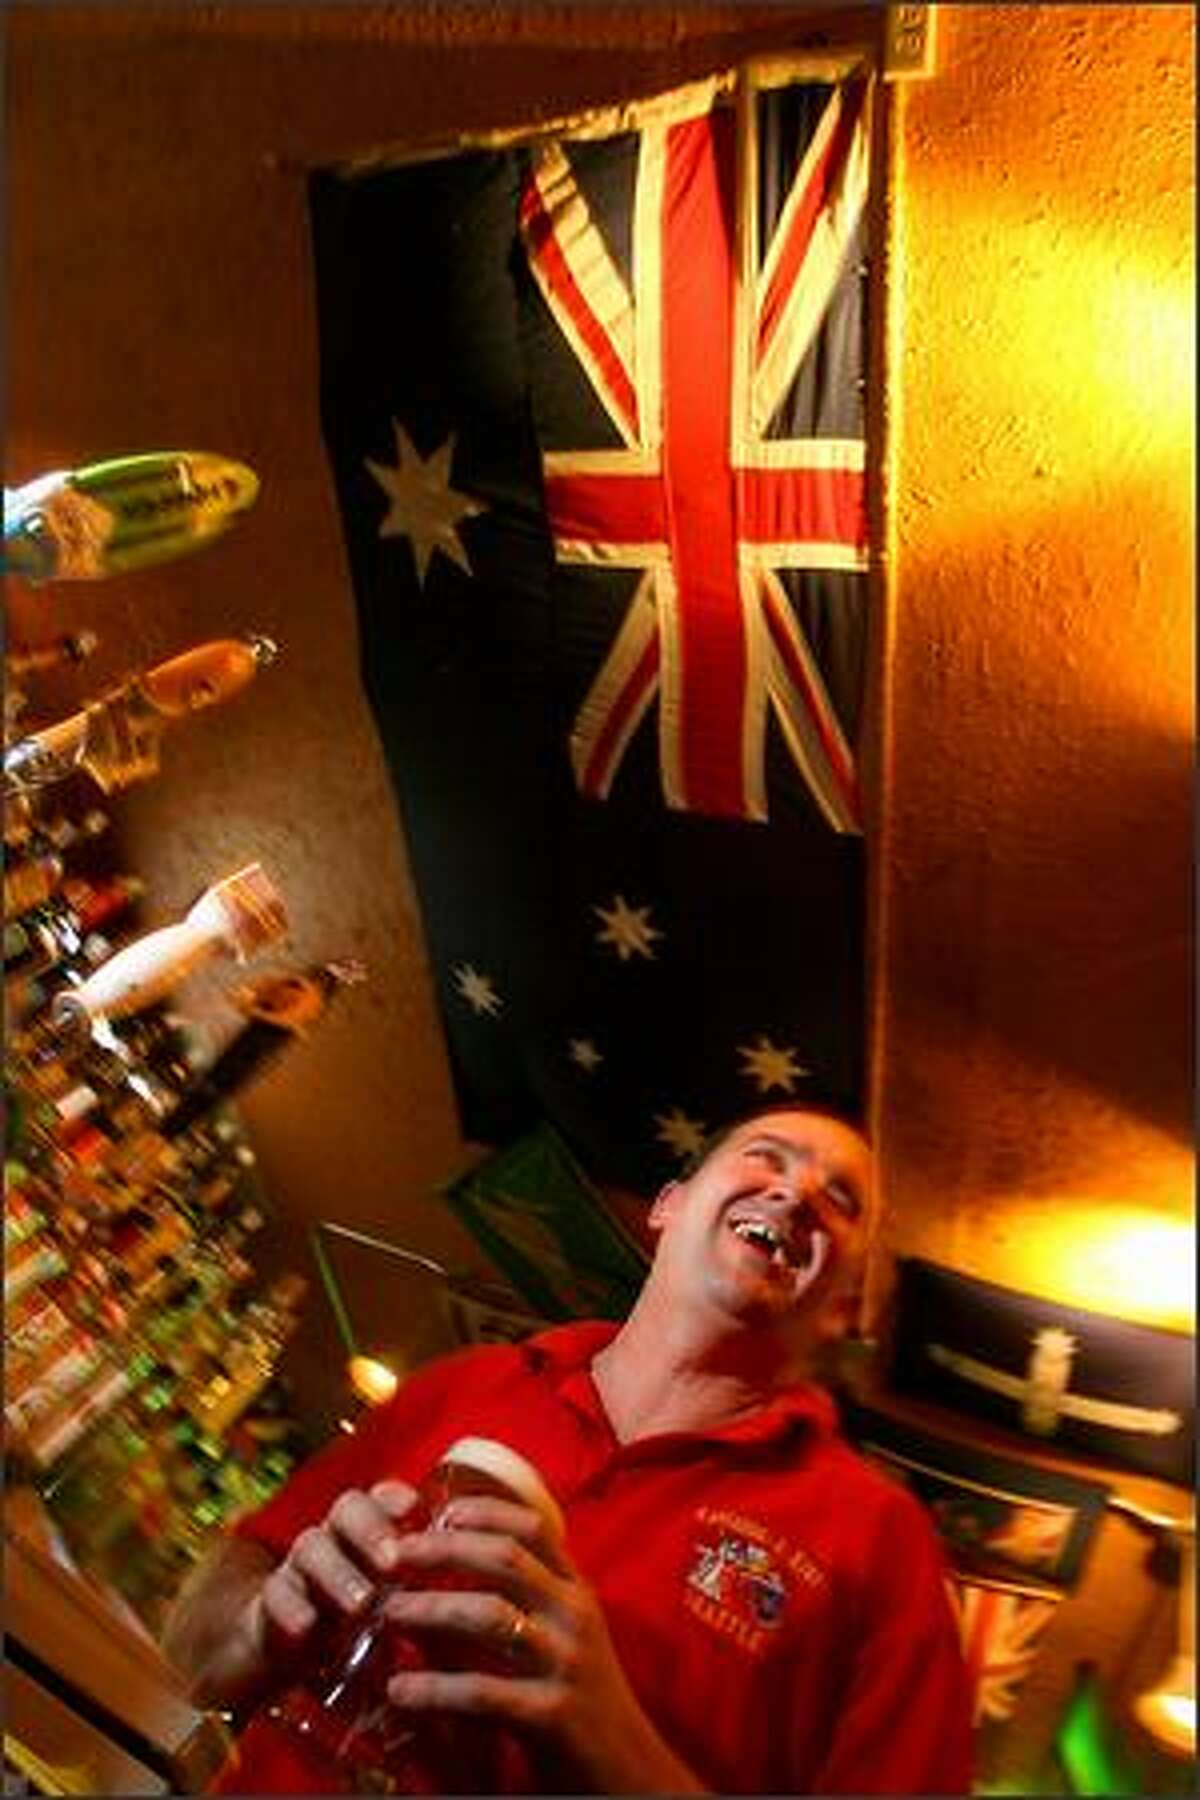 This is the sixth year for the Australia Day celebration at Brad Howe's Kangaroo and Kiwi Pub.